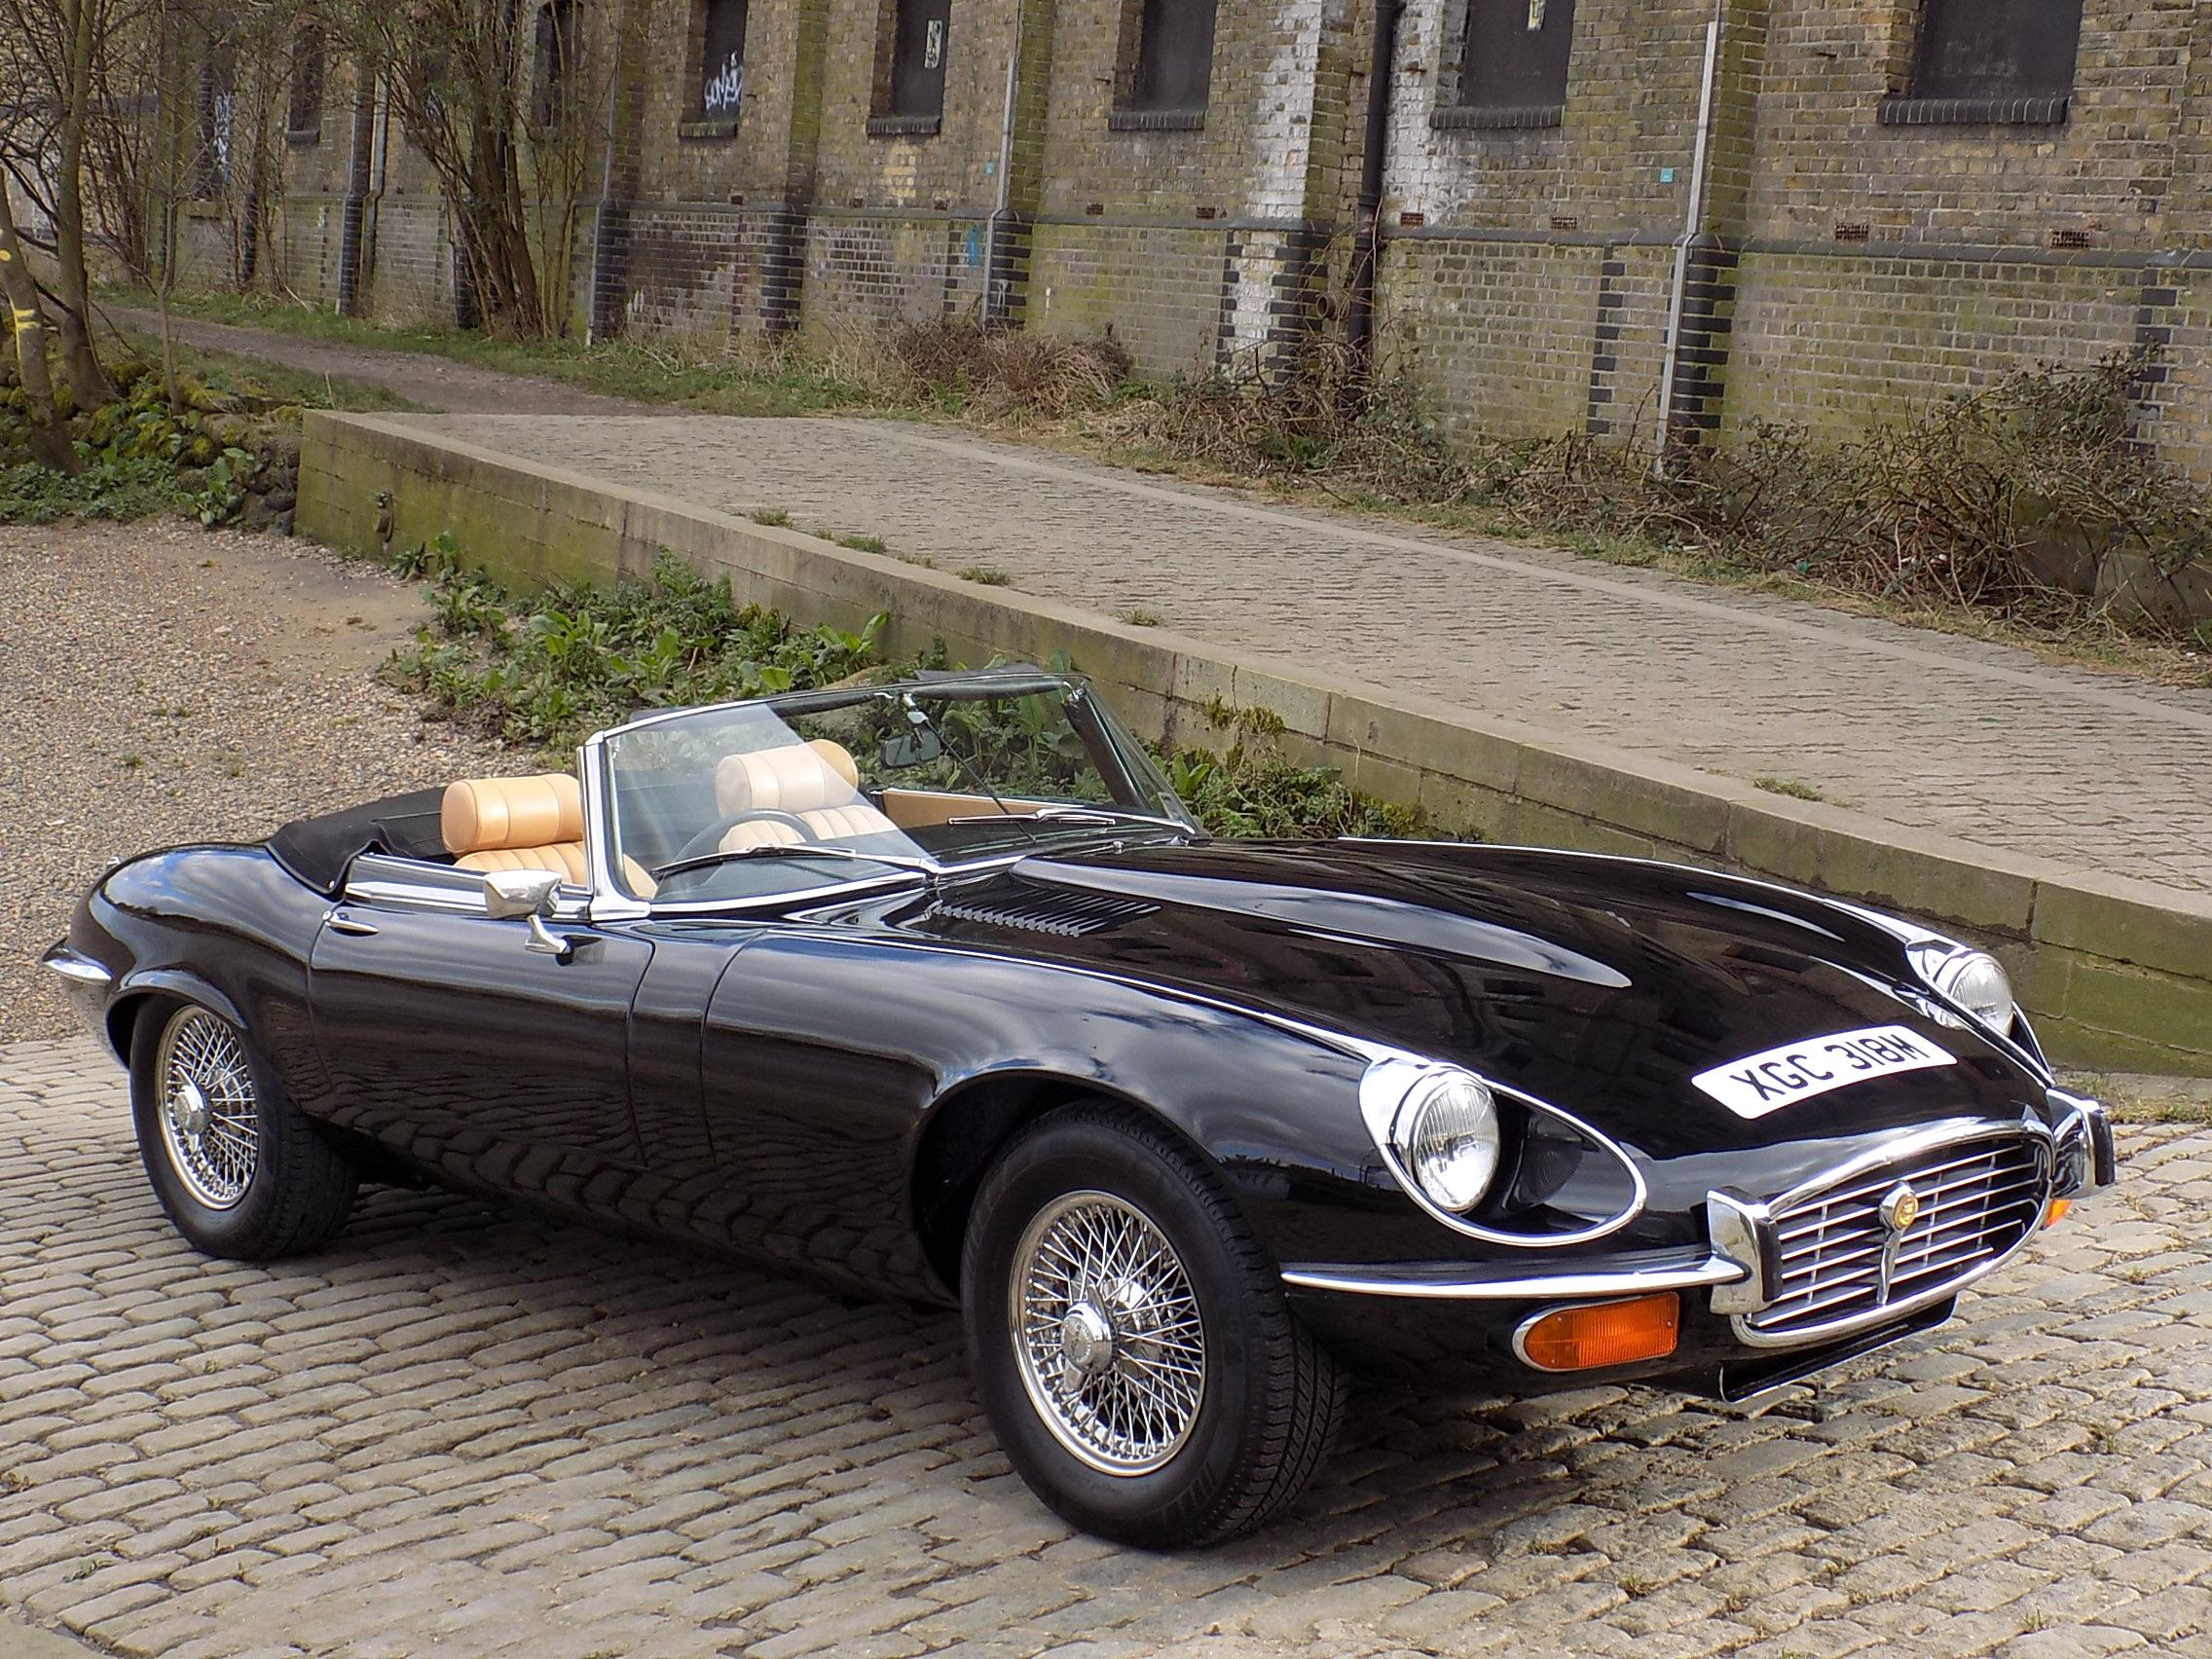 to car classic at cars two the revealed concept be photos london sale jaguar for photo gallery show news recreated